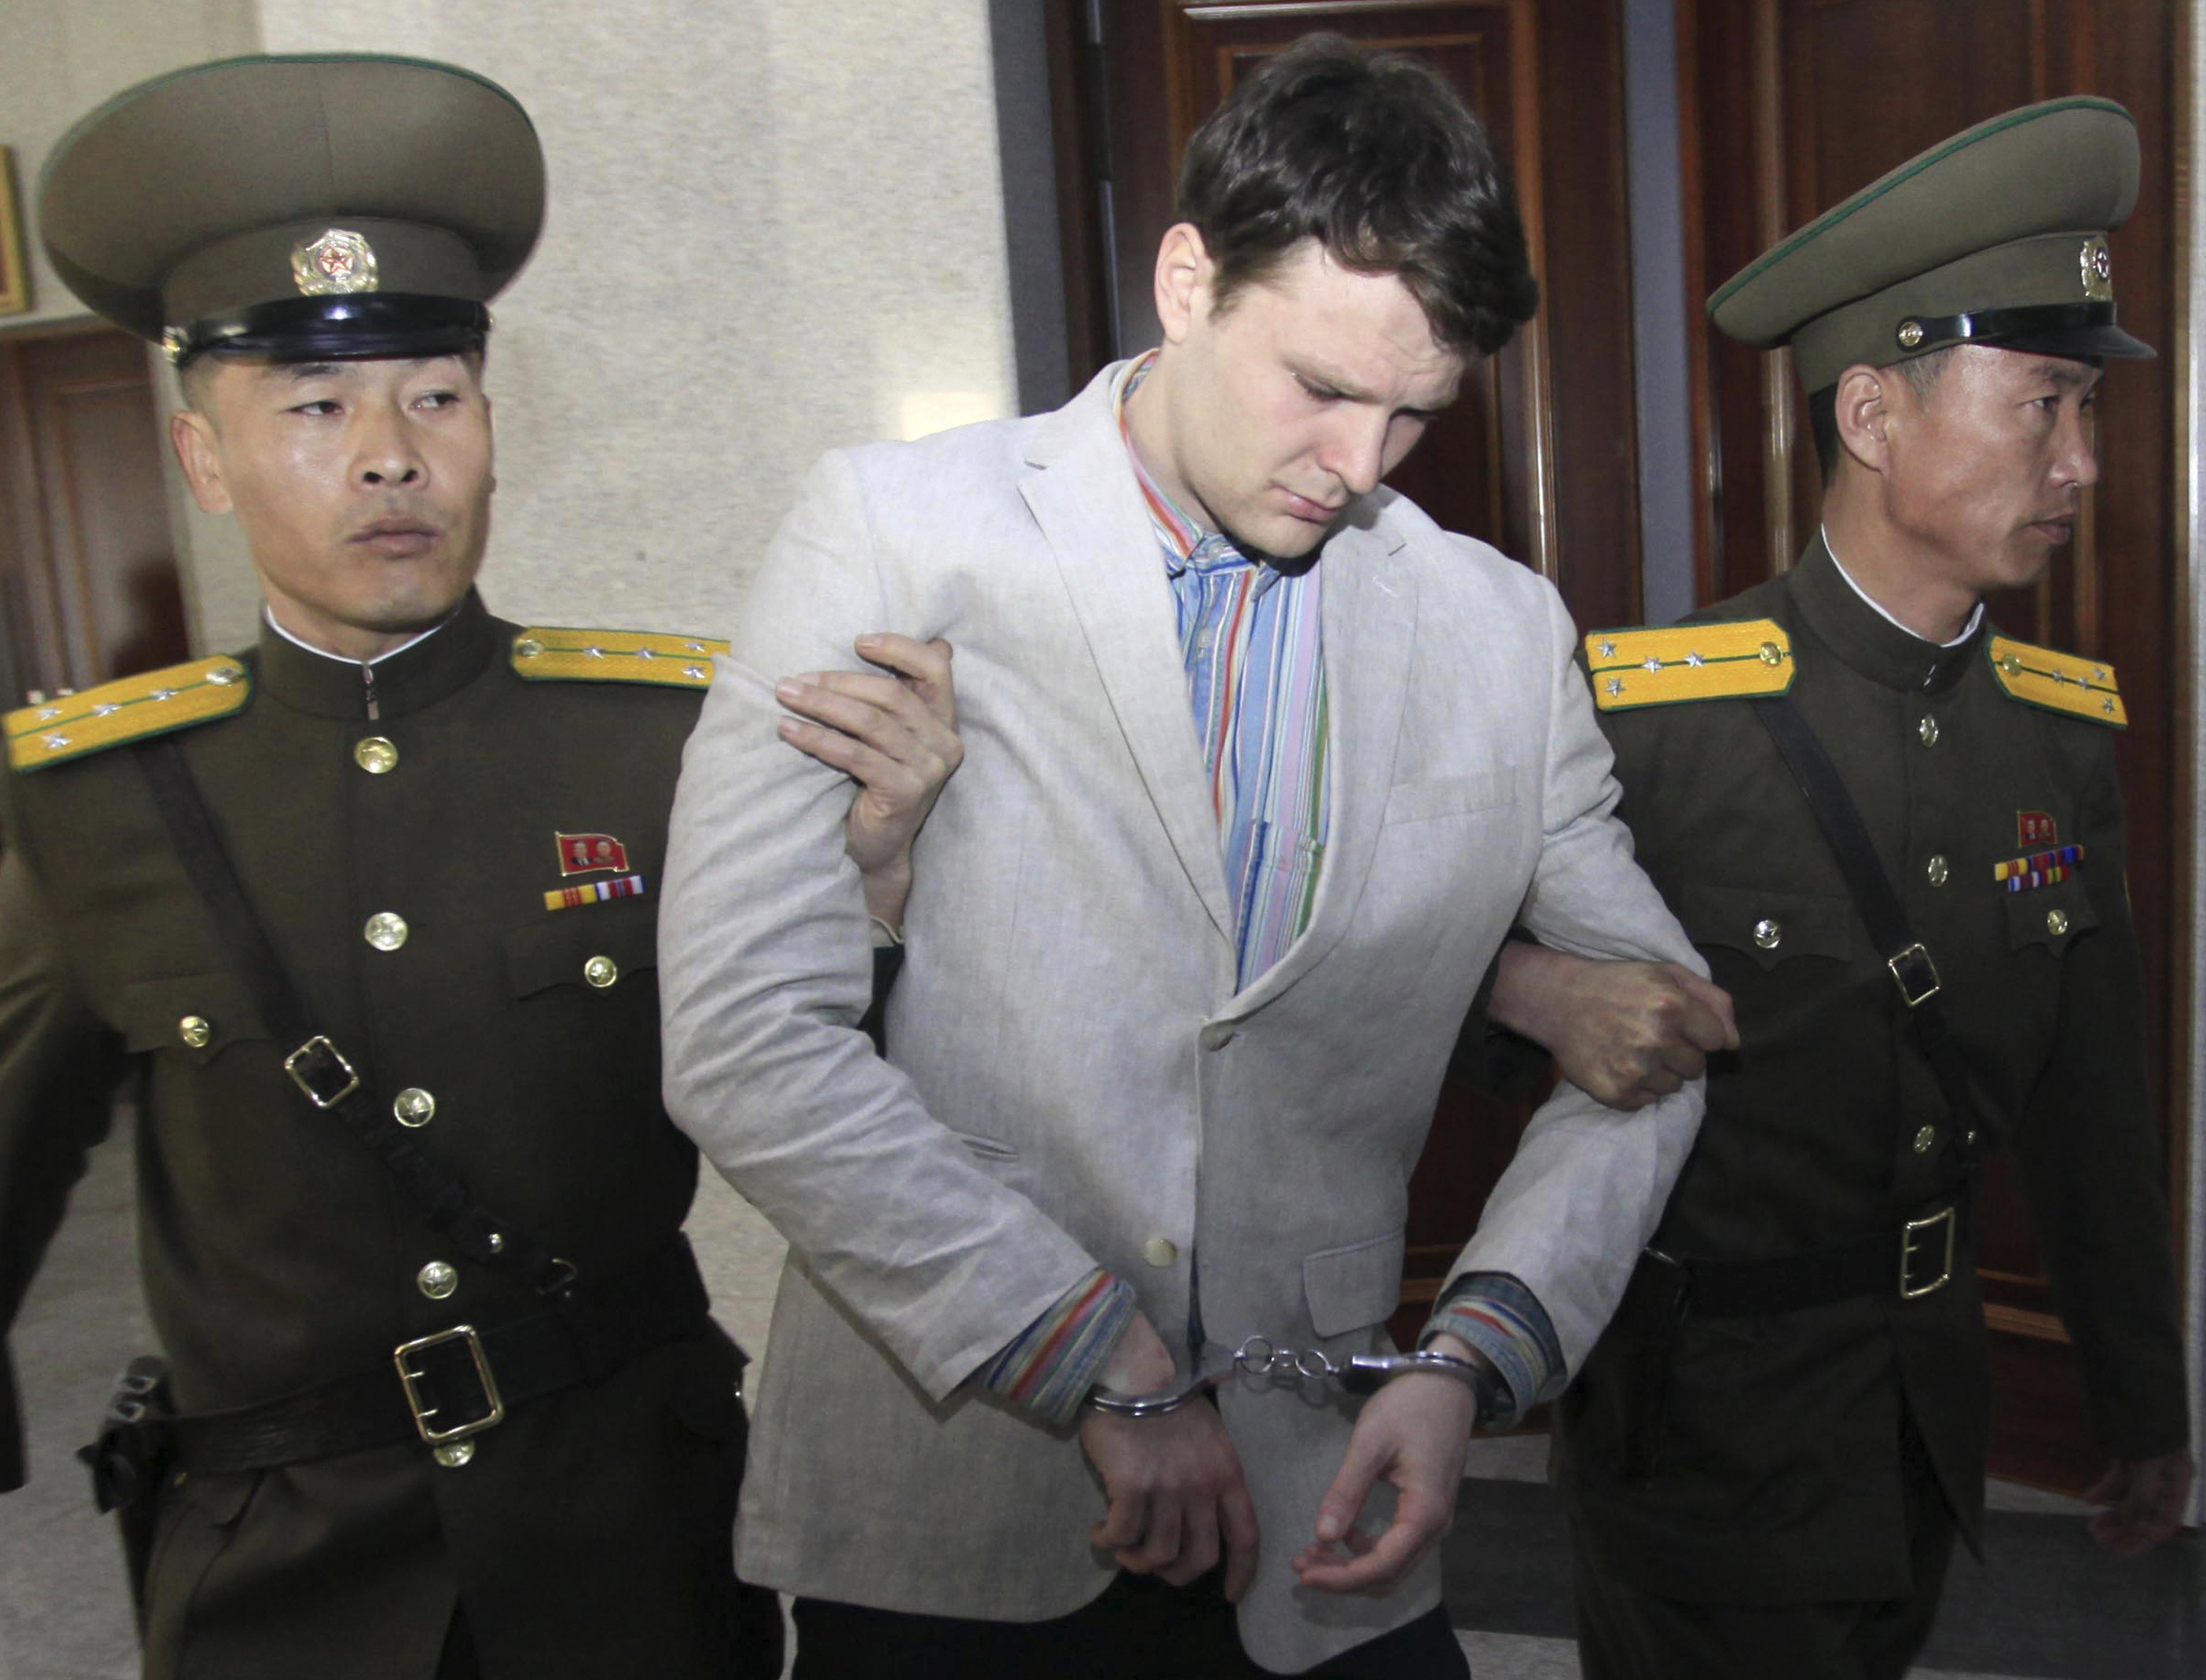 American student Otto Warmbier in Pyongyang, North Korea, on March 16, 2016.